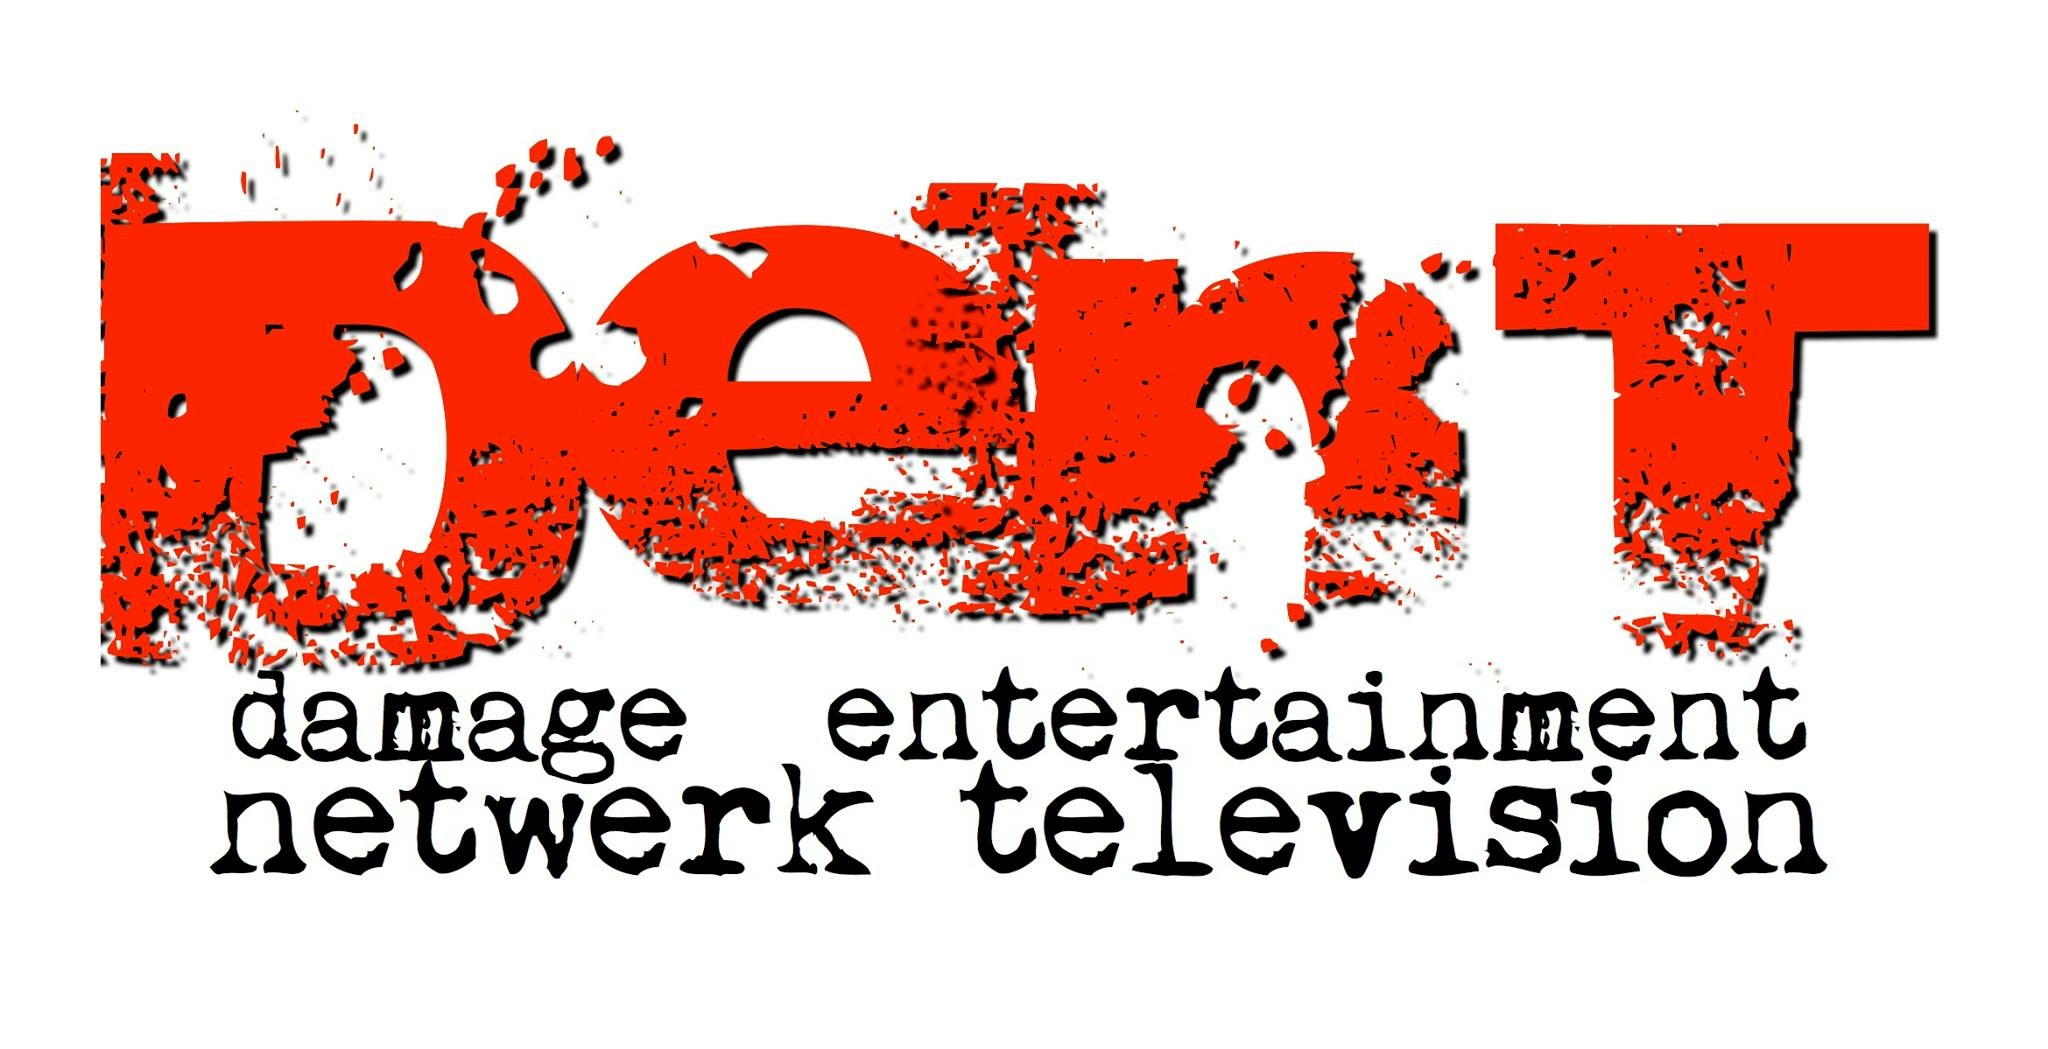 DENT damage entertainment netwerk television